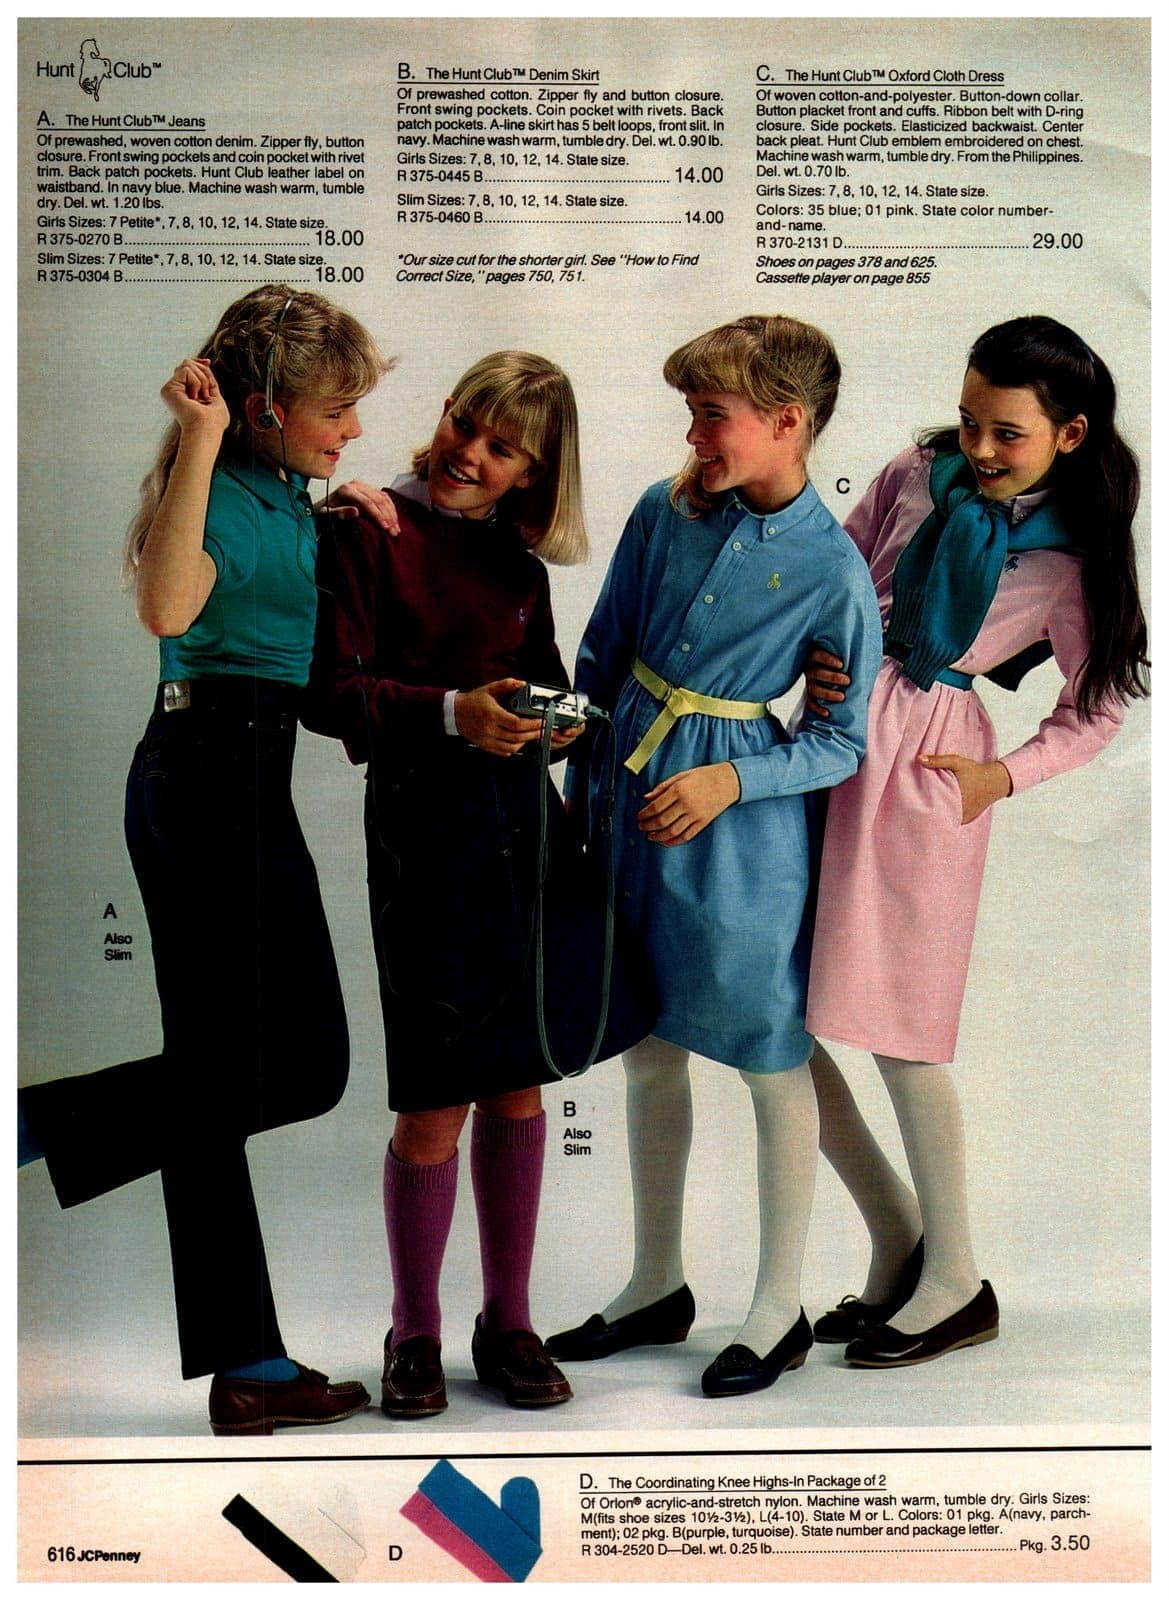 Hunt Club jeans, denim skirts and Oxford cloth dresses in blue and pink